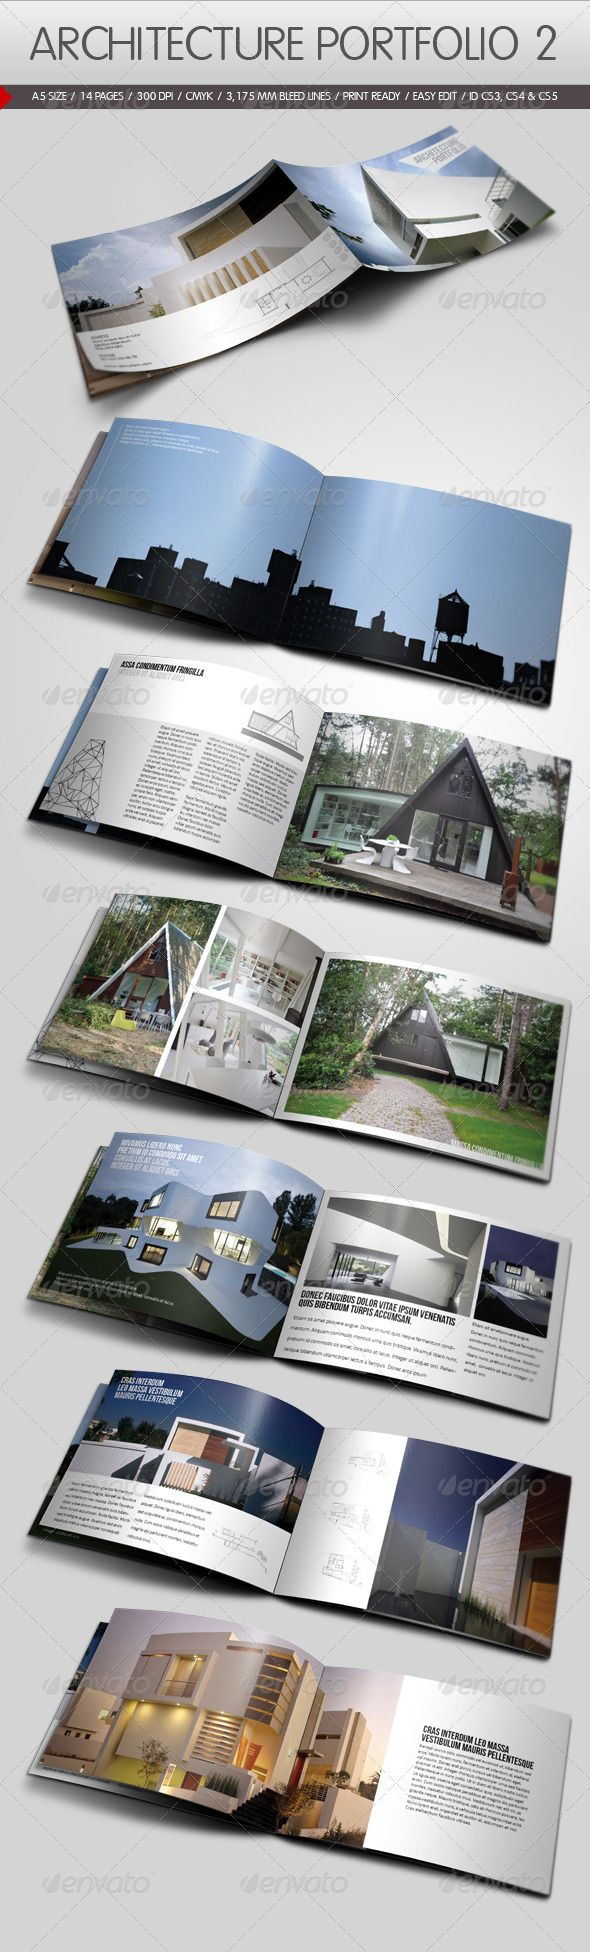 Architecture Portfolio II Modern minimal brochure template for real estate, architecture, construction companies or any business industry. Easy to edit.